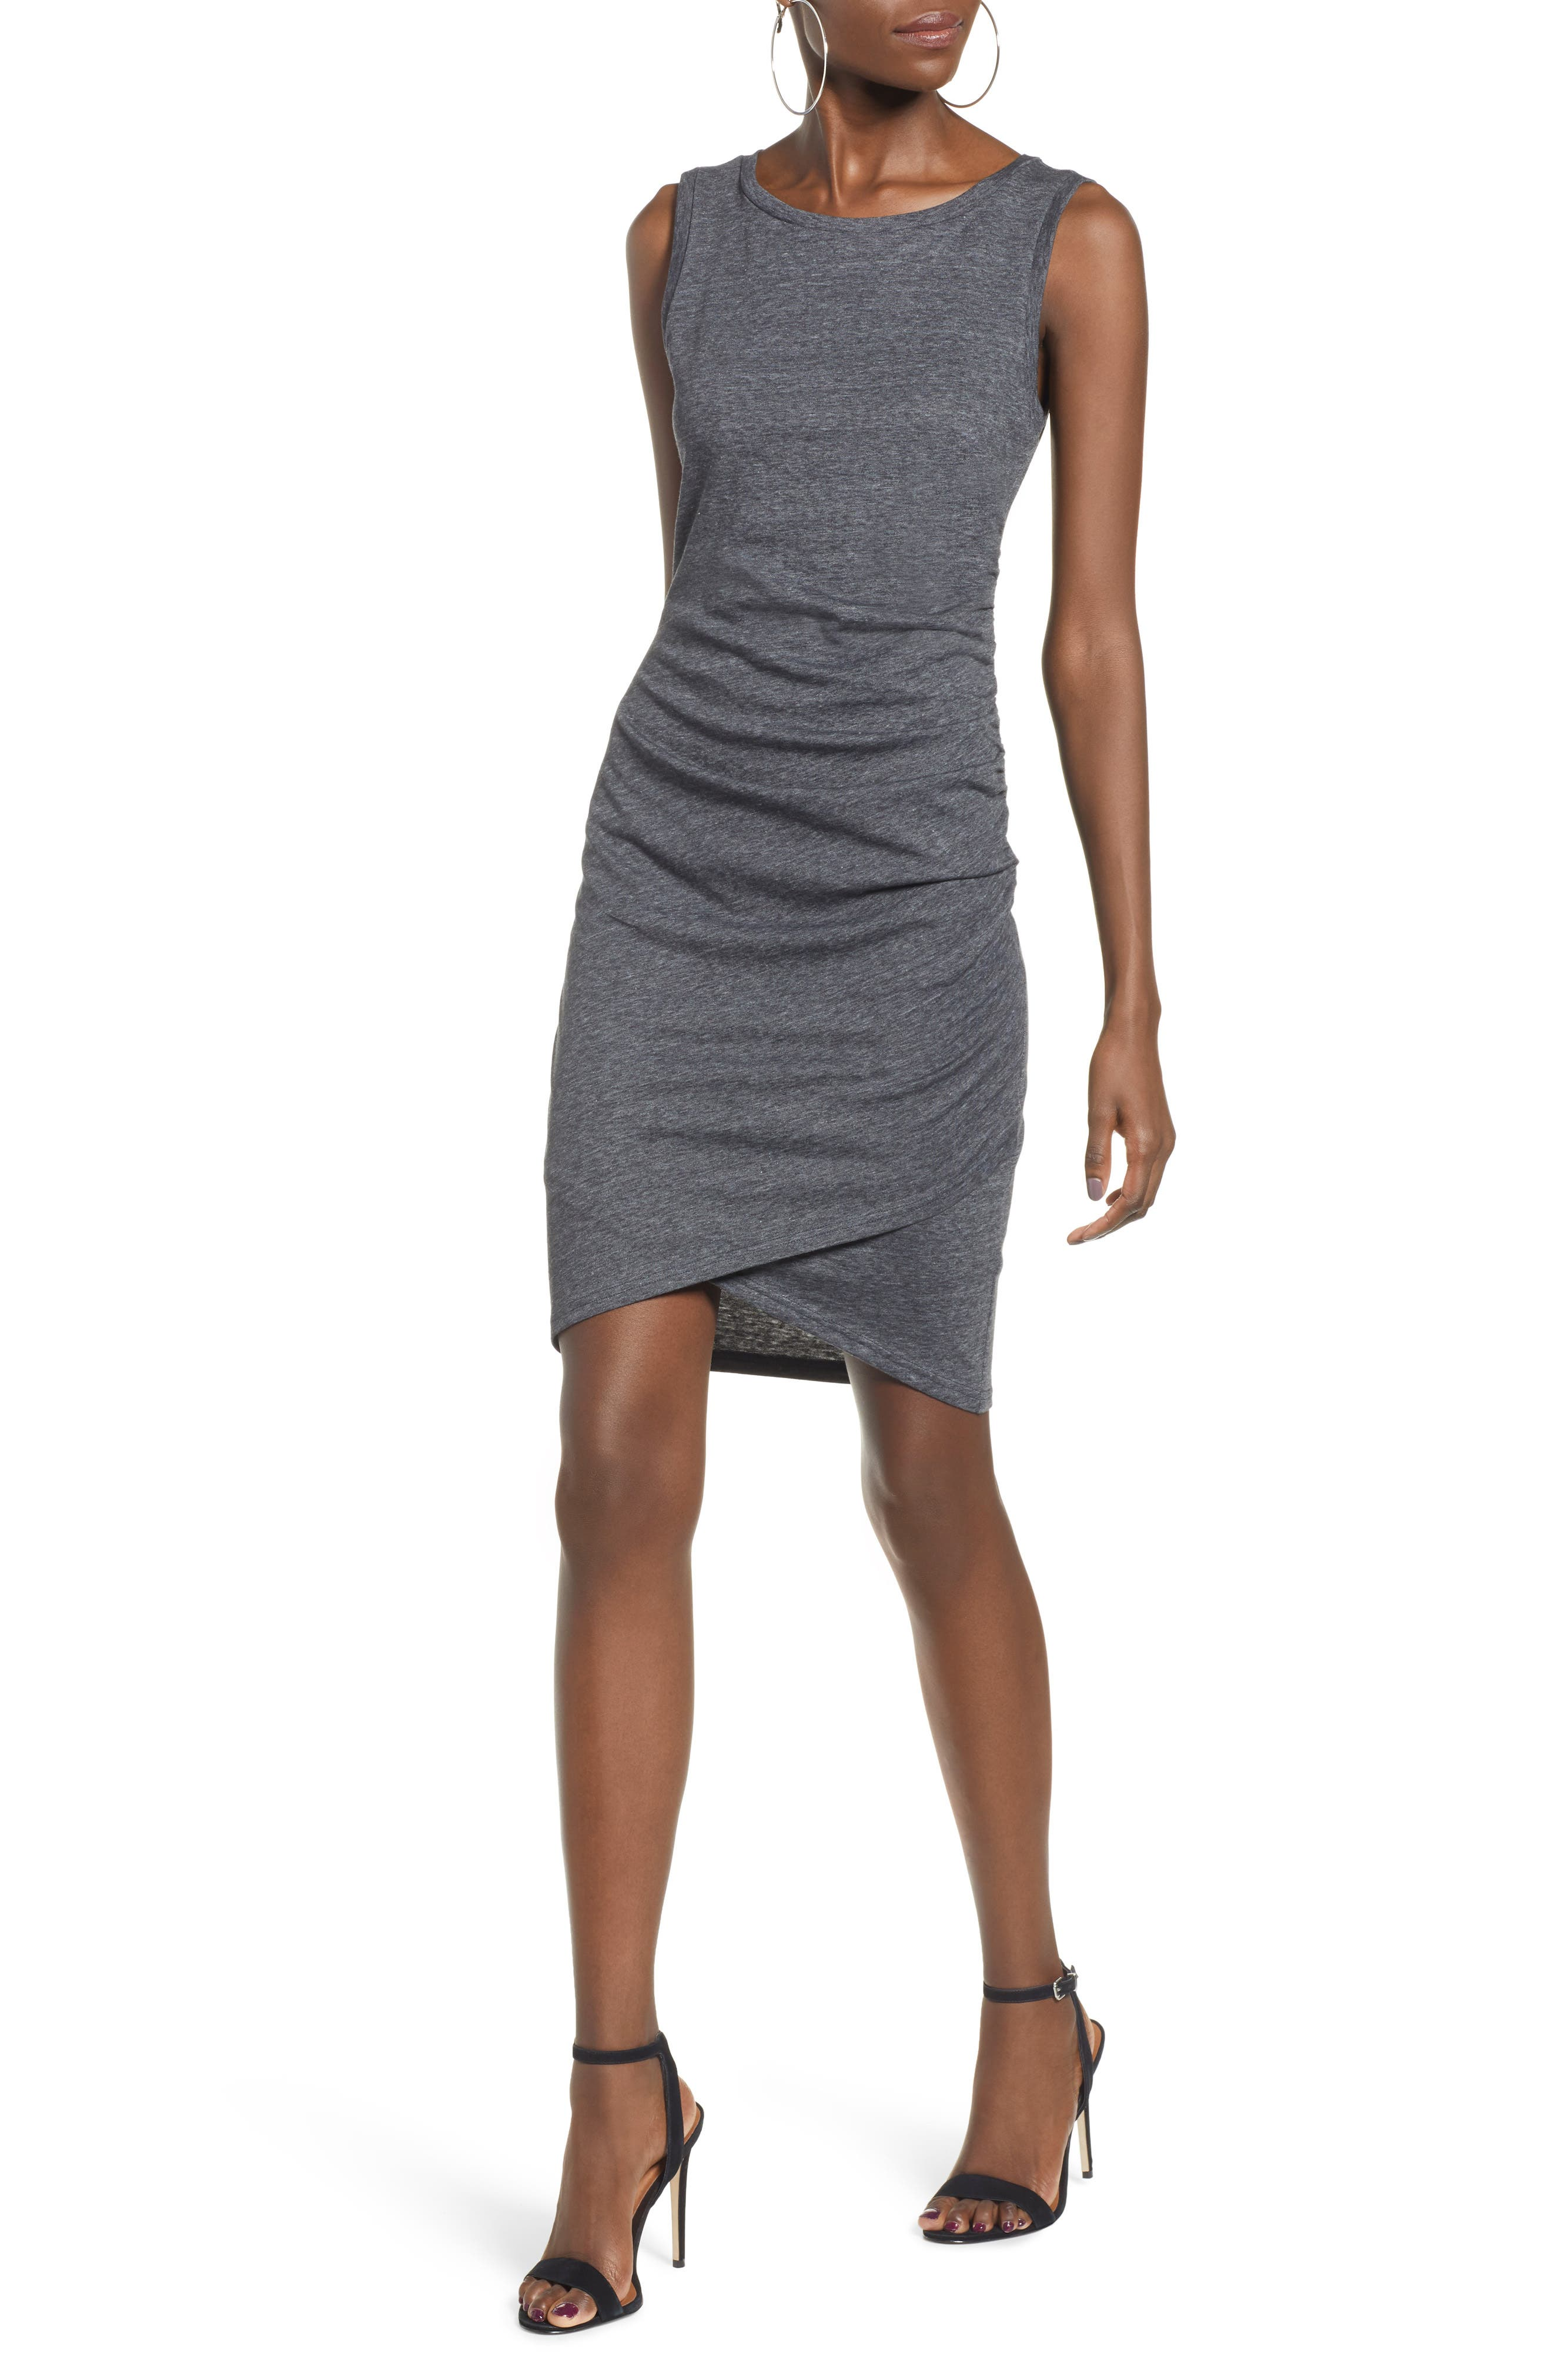 Ruched Body-Con Tank Dress,                         Main,                         color, GREY MEDIUM CHARCOAL HEATHER